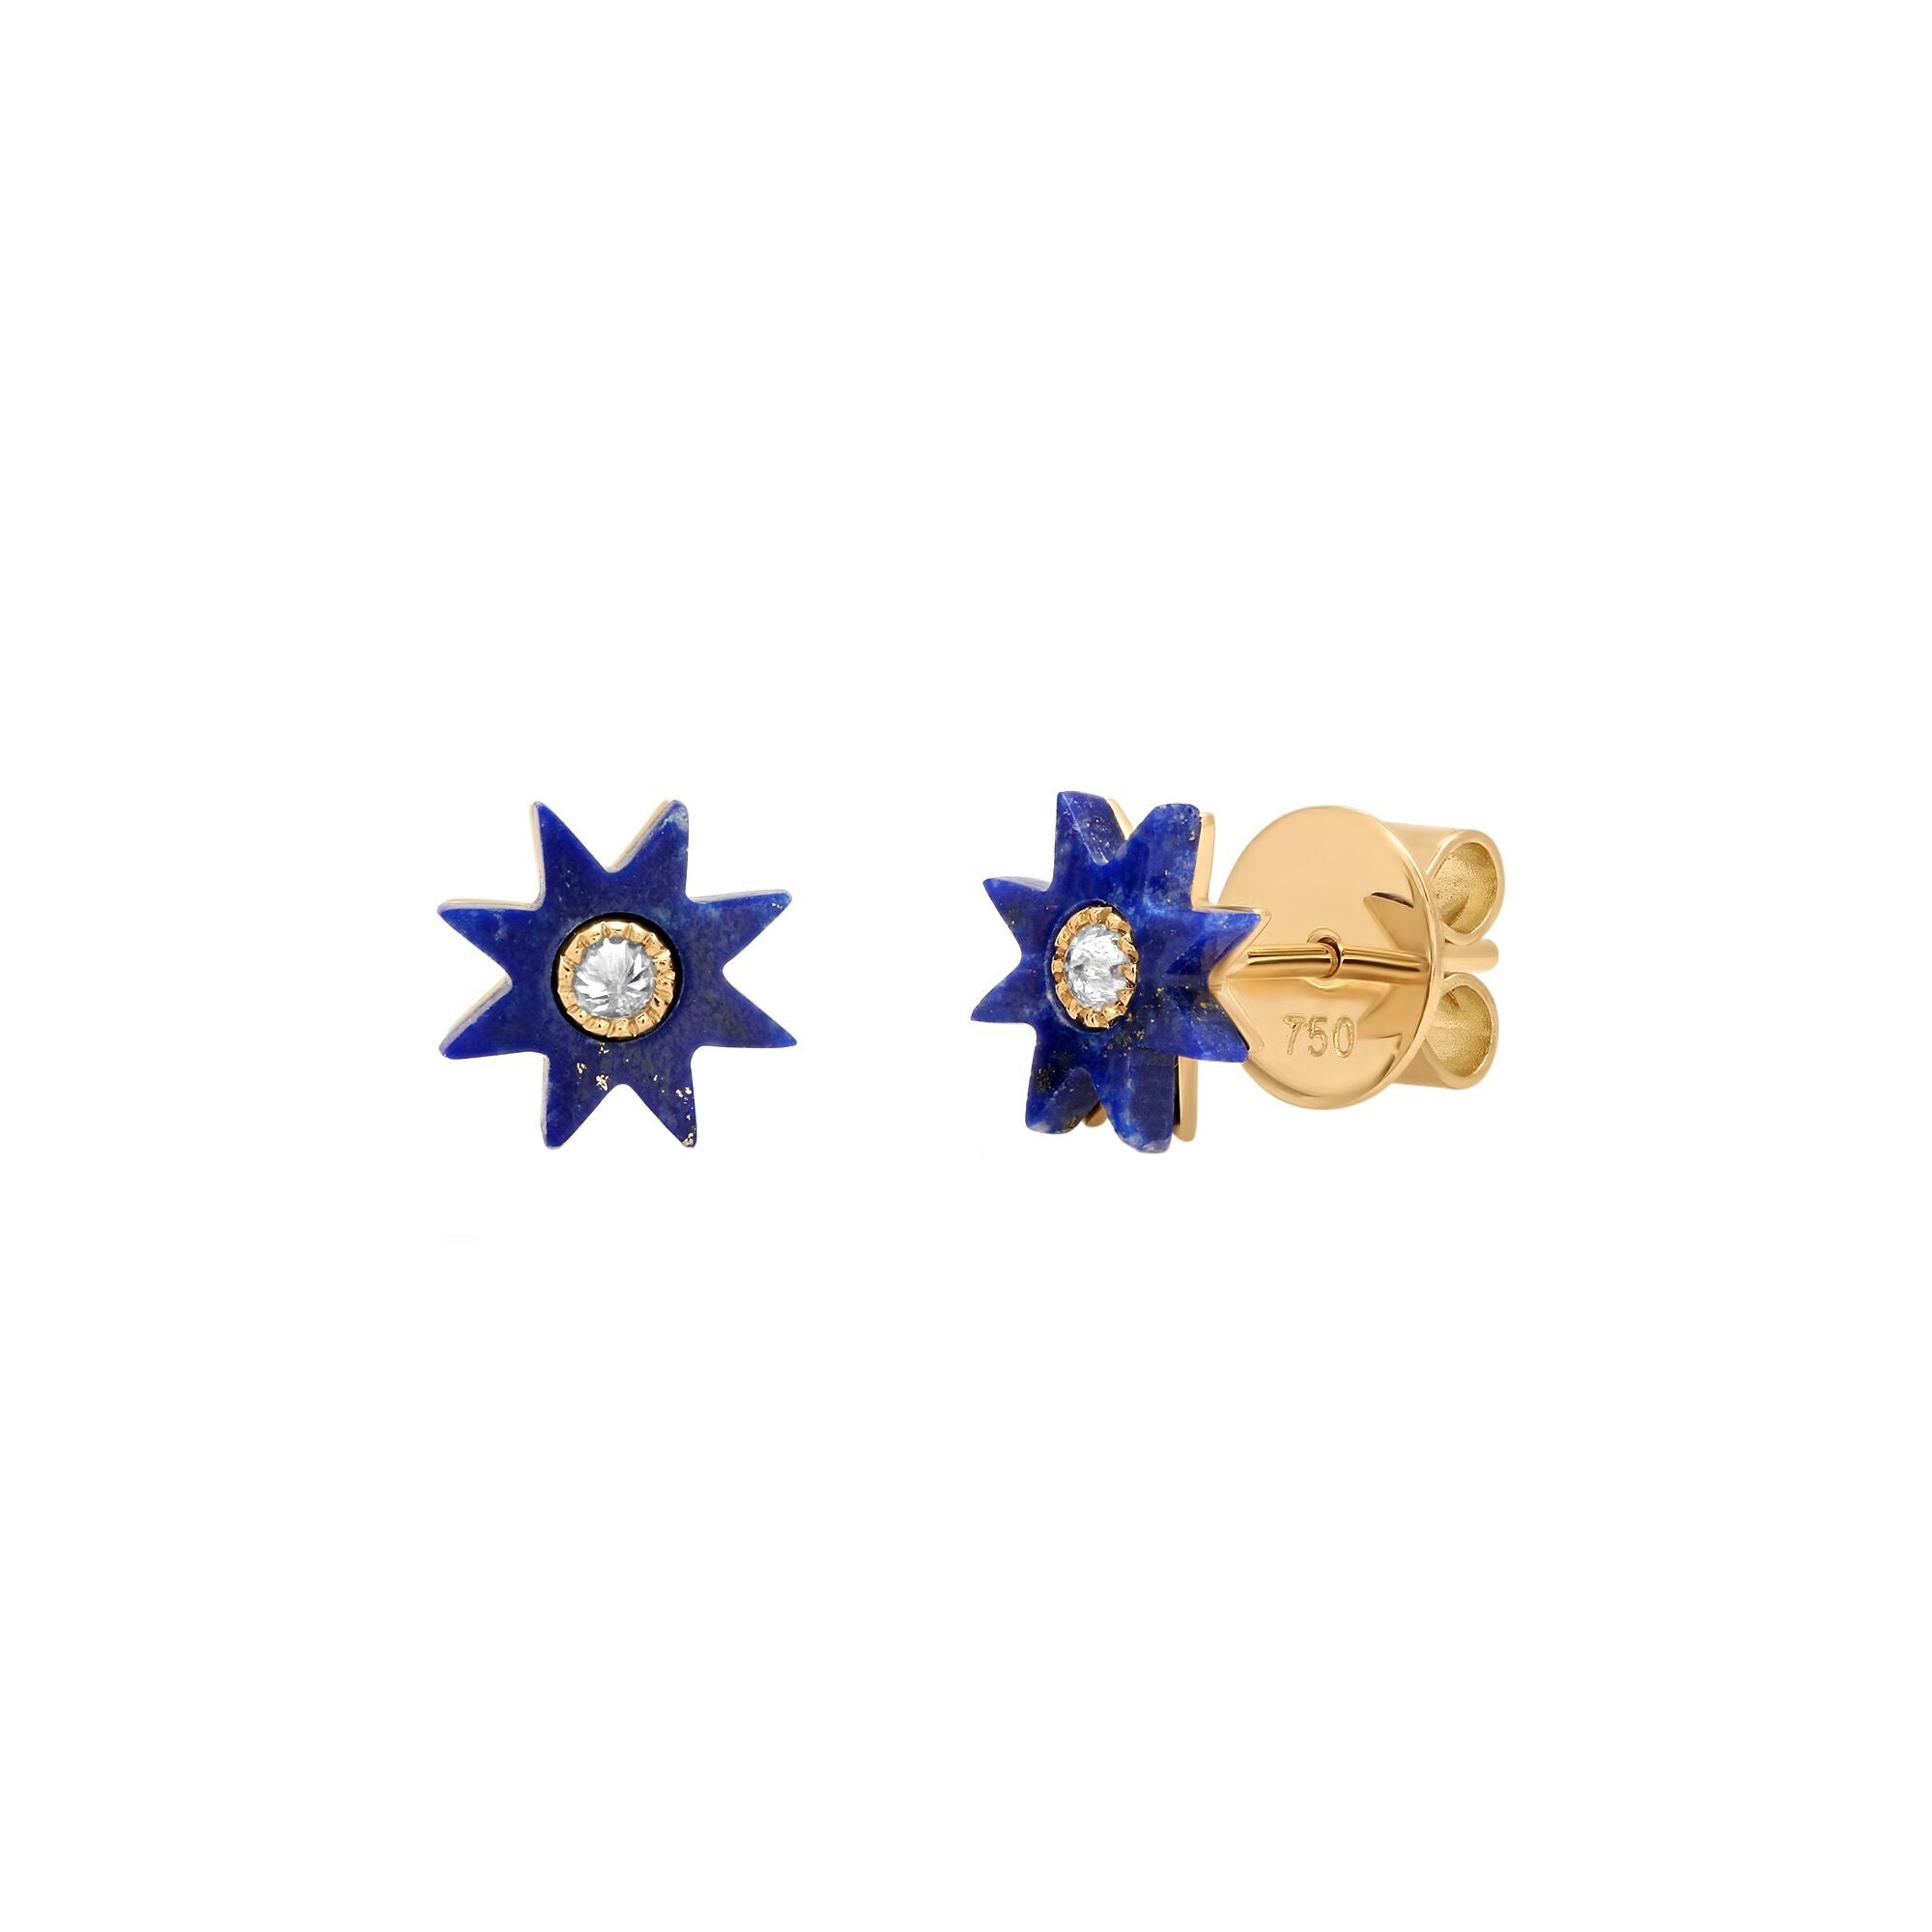 Lapis Blue Star Studs by Colette for Broken English Jewelry